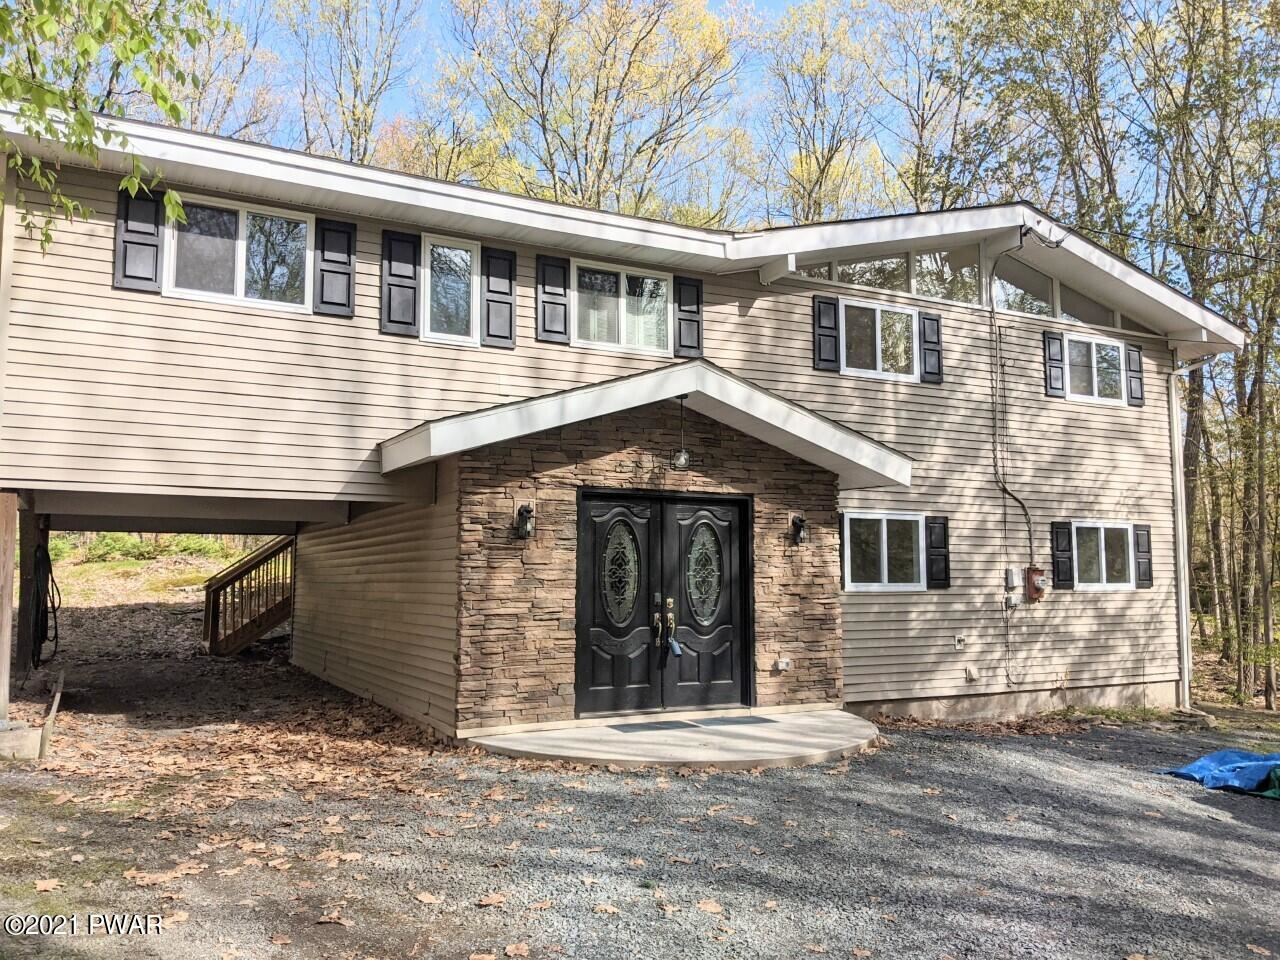 Photo of 102 Bluestone Dr, Lords Valley, PA 18428 (MLS # 21-2201)